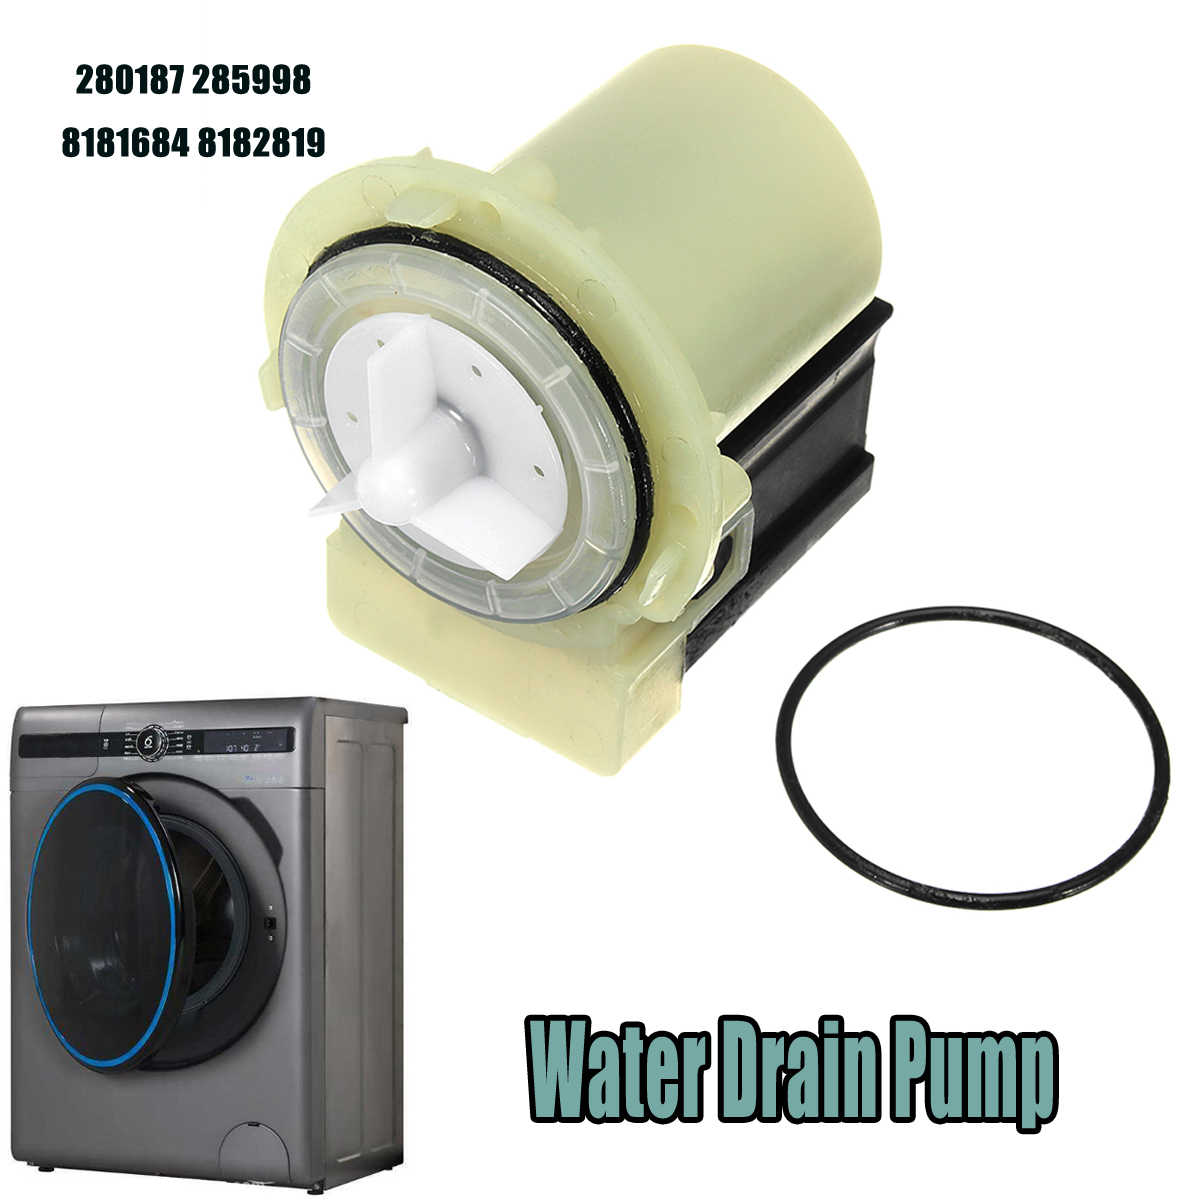 Water Drain Pump For Whirlpool Kenmore Maytag 280187 285998 8181684 on